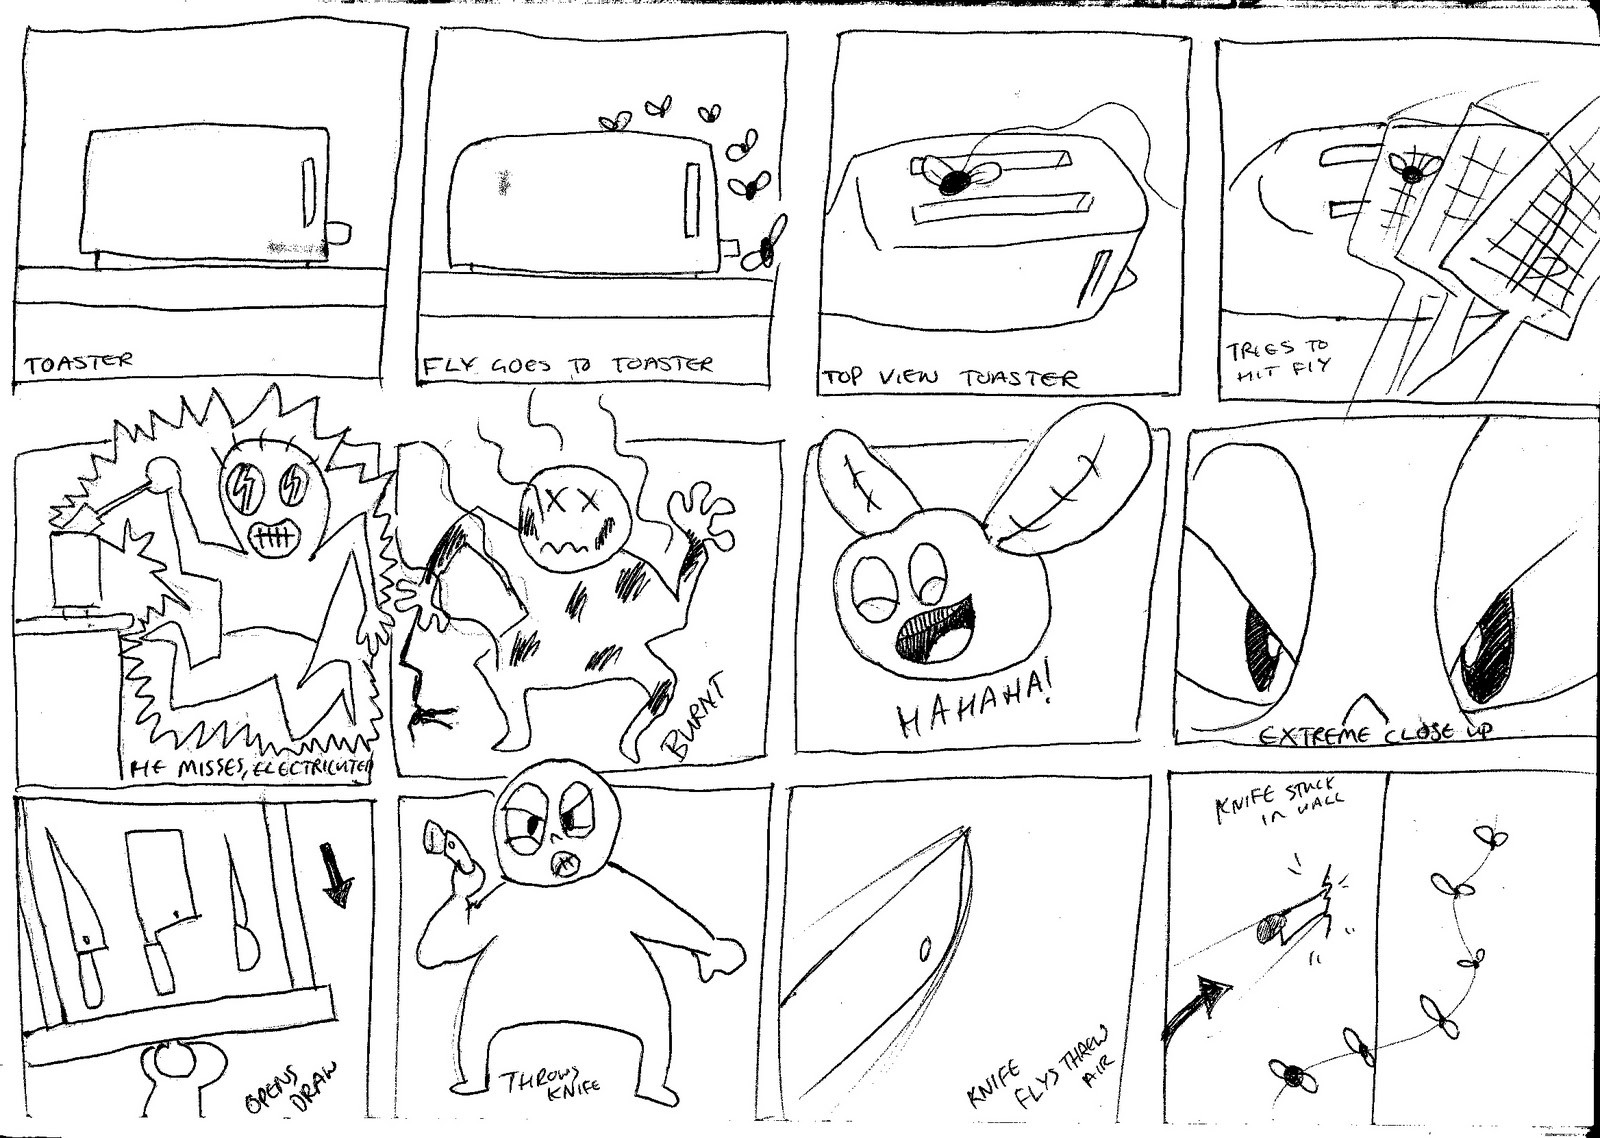 _A motion graphic storyboard (_[_source_](http://algrehan.blogspot.com/2011/02/fly-storyboard.html)_)._